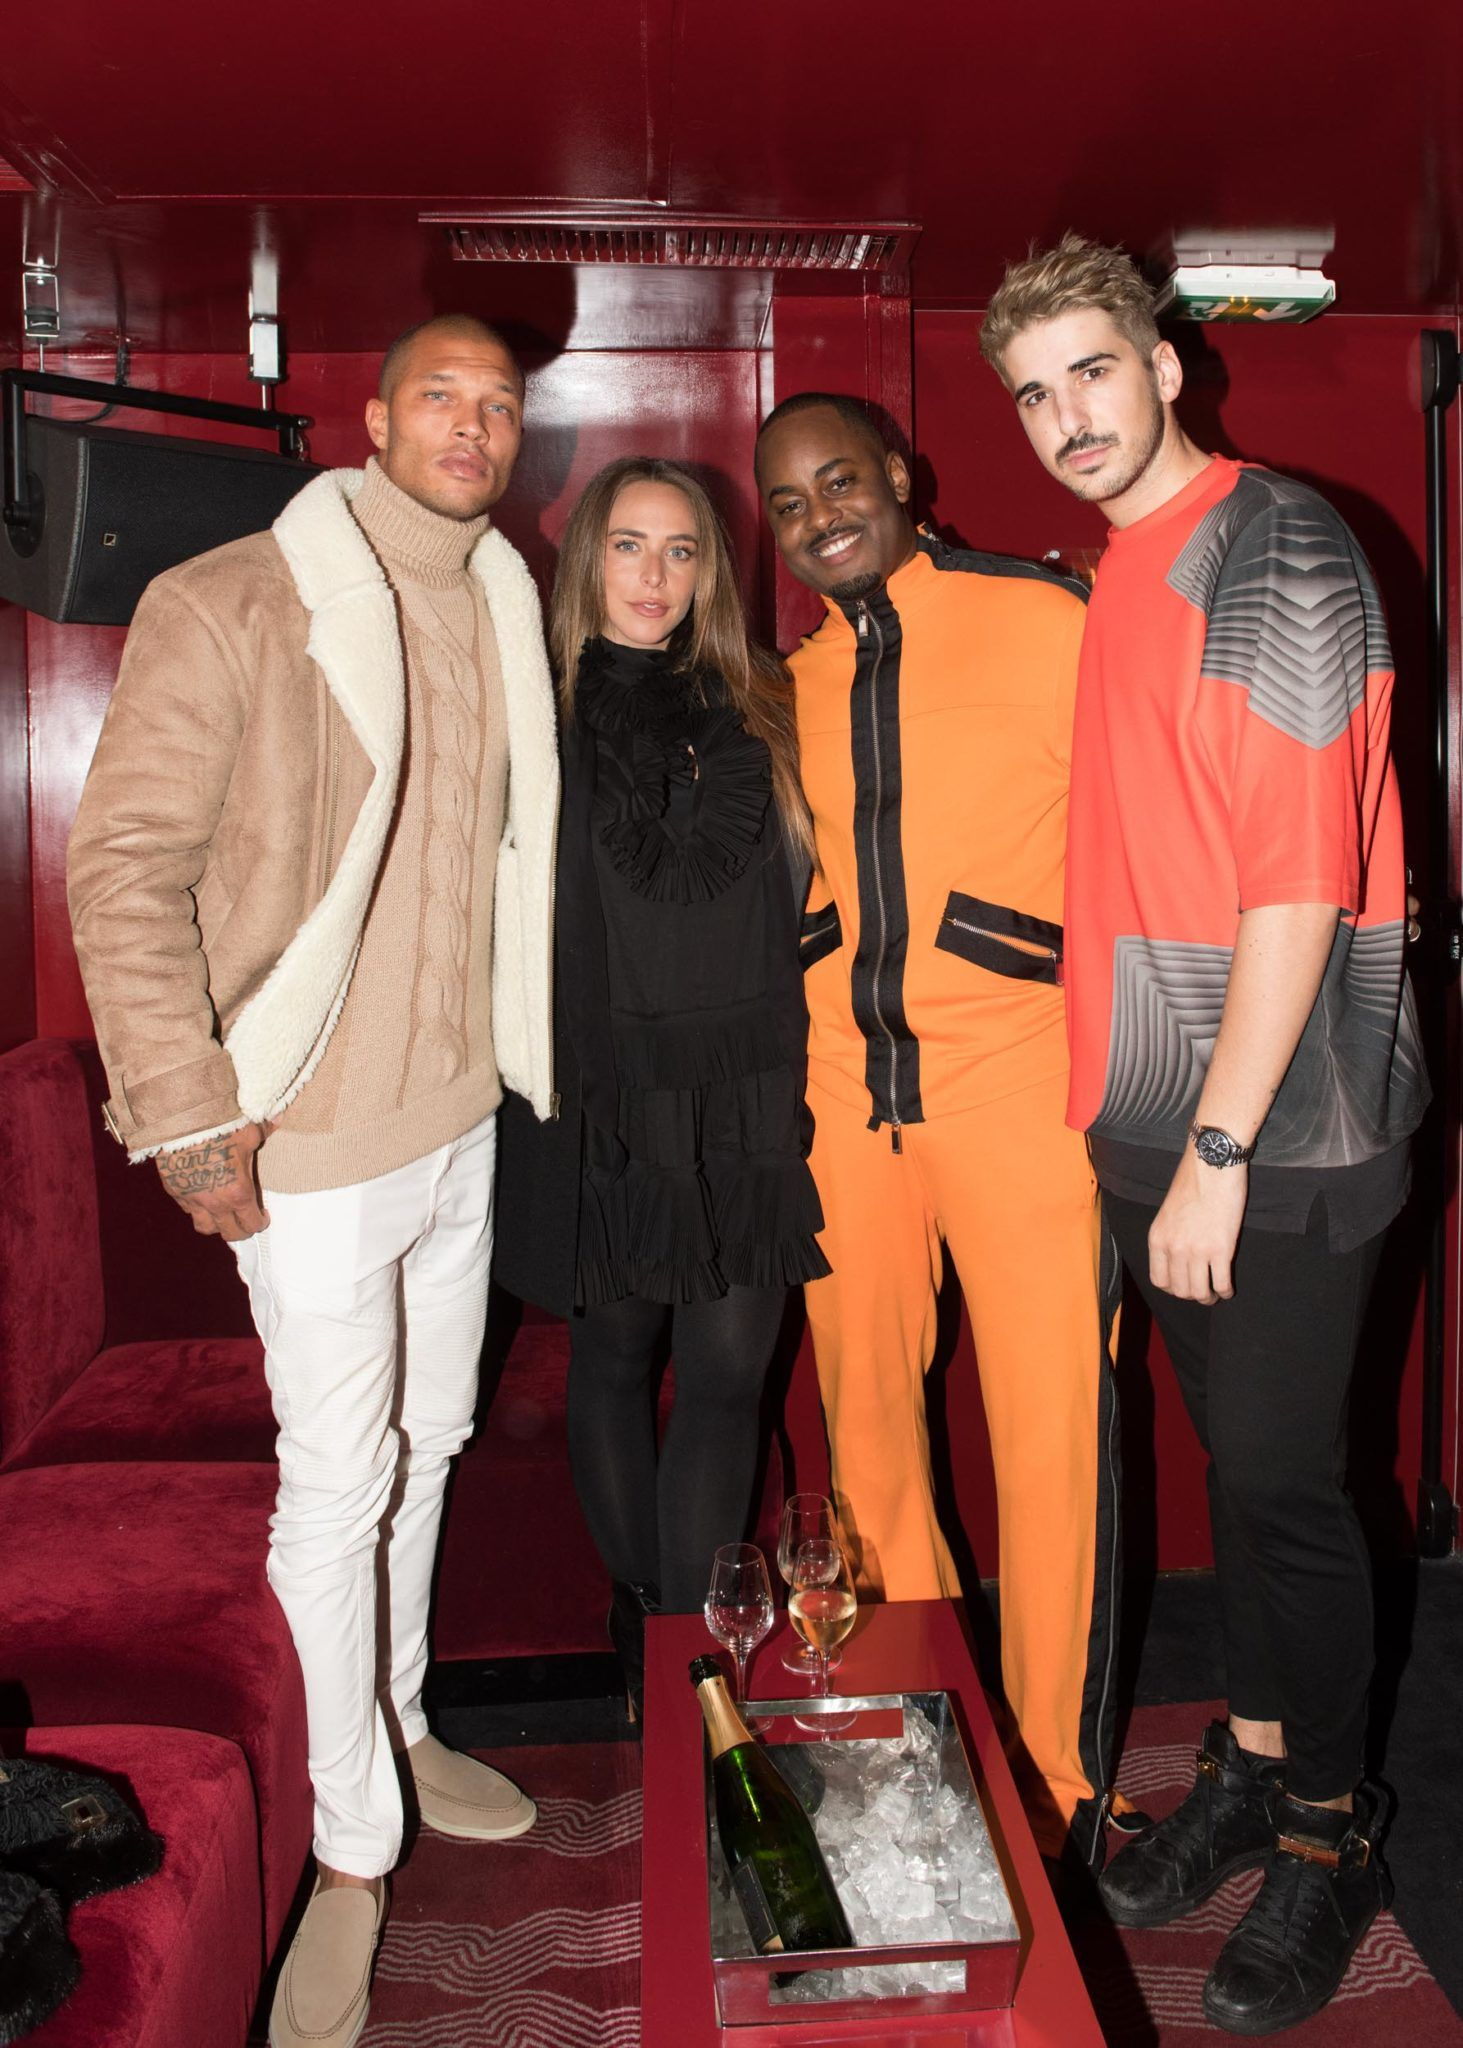 2d6803075d6 We took our Launch of Issue 4 with Cover boy Jeremy Meeks to our friends  and readers during Paris Fashion Week. We opened our doors at the Concept  club ...